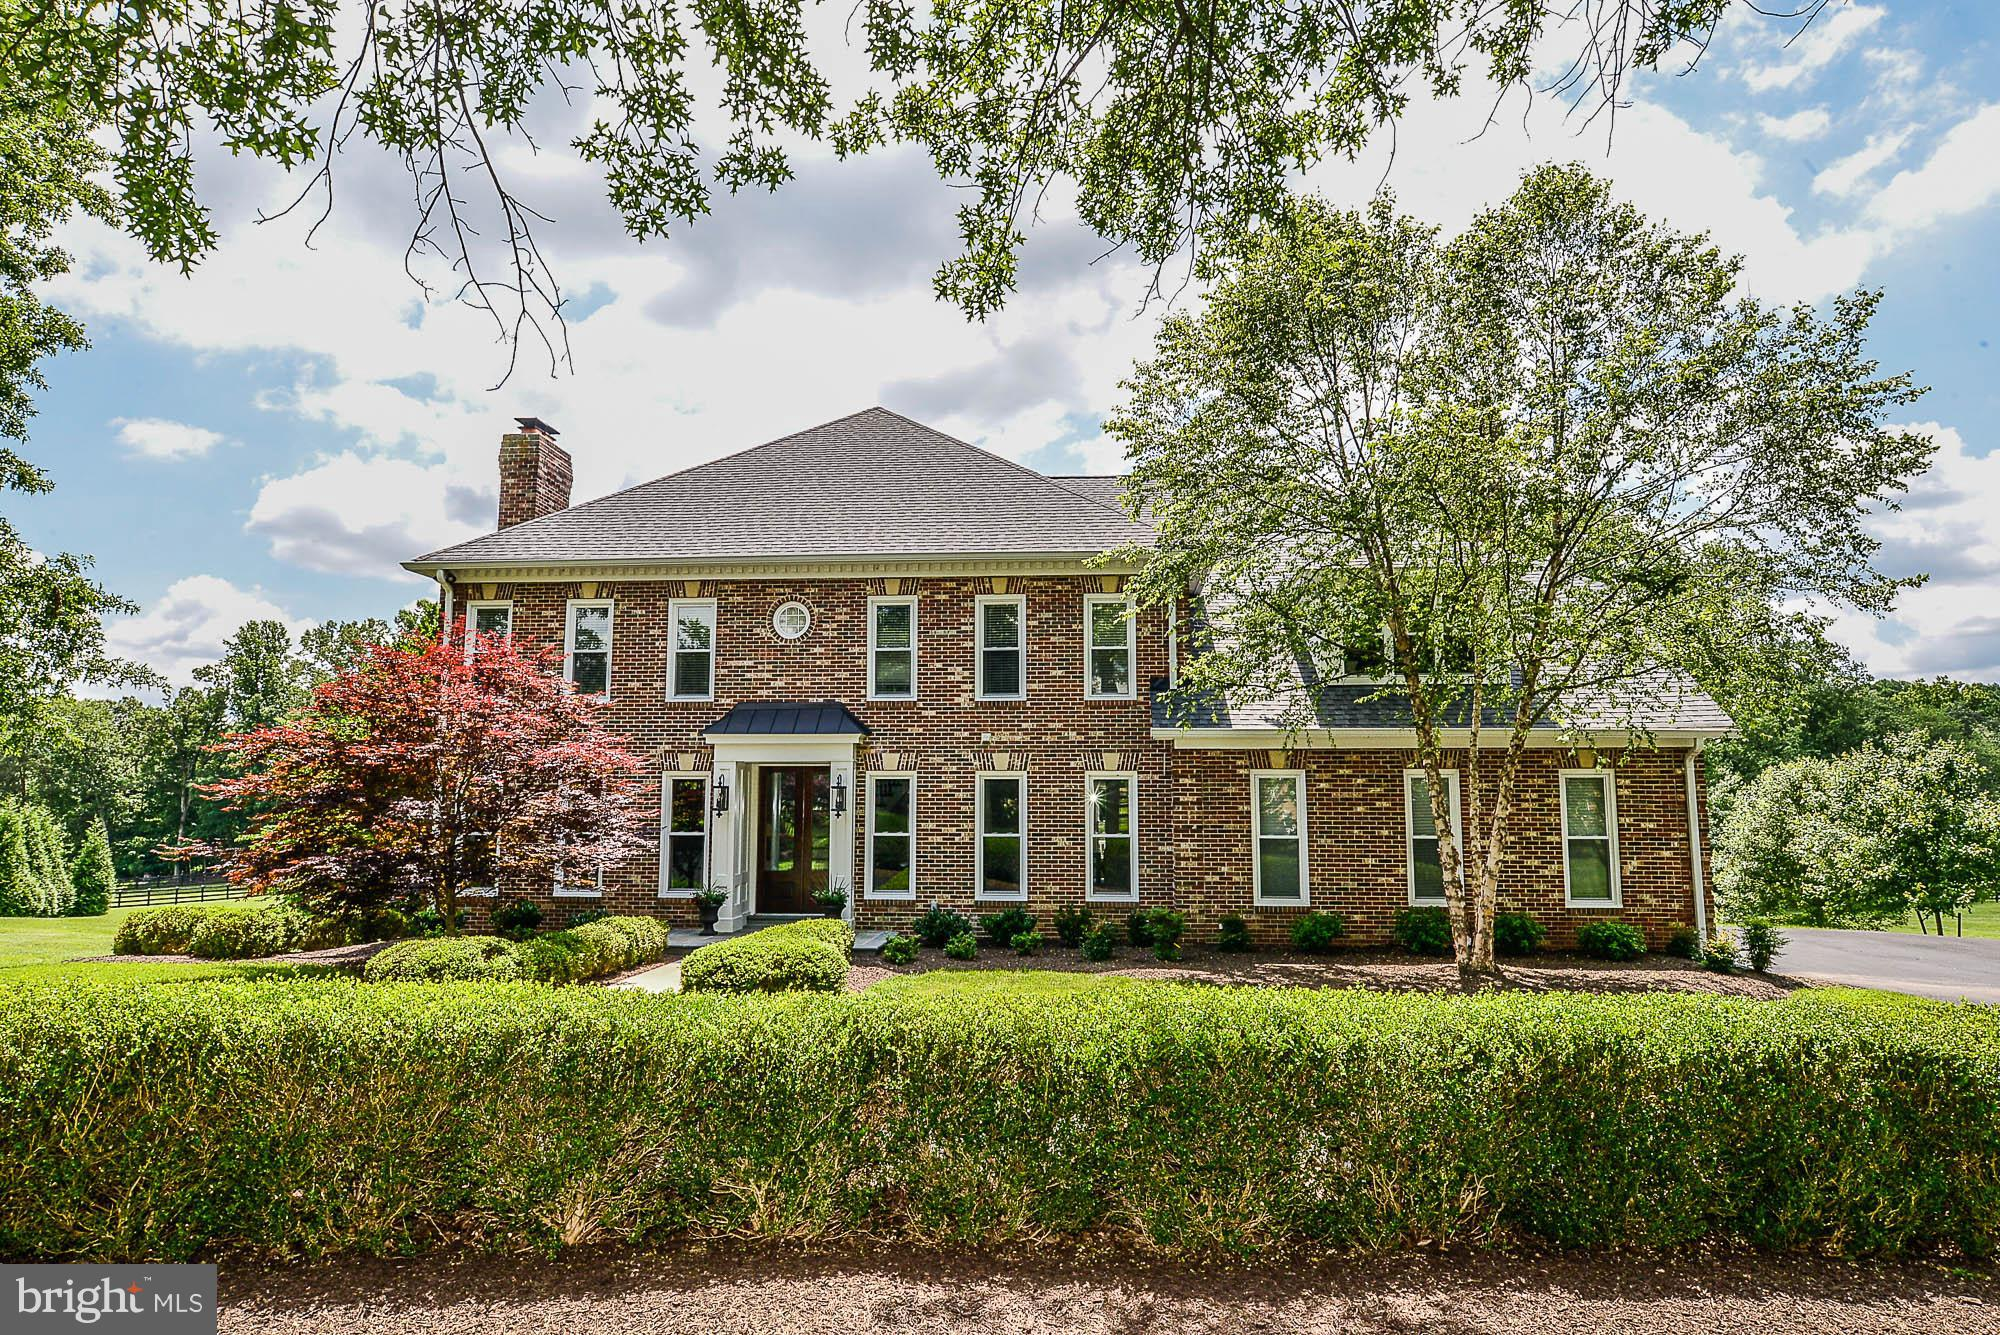 11451 QUAILWOOD MANOR DRIVE, FAIRFAX STATION, VA 22039